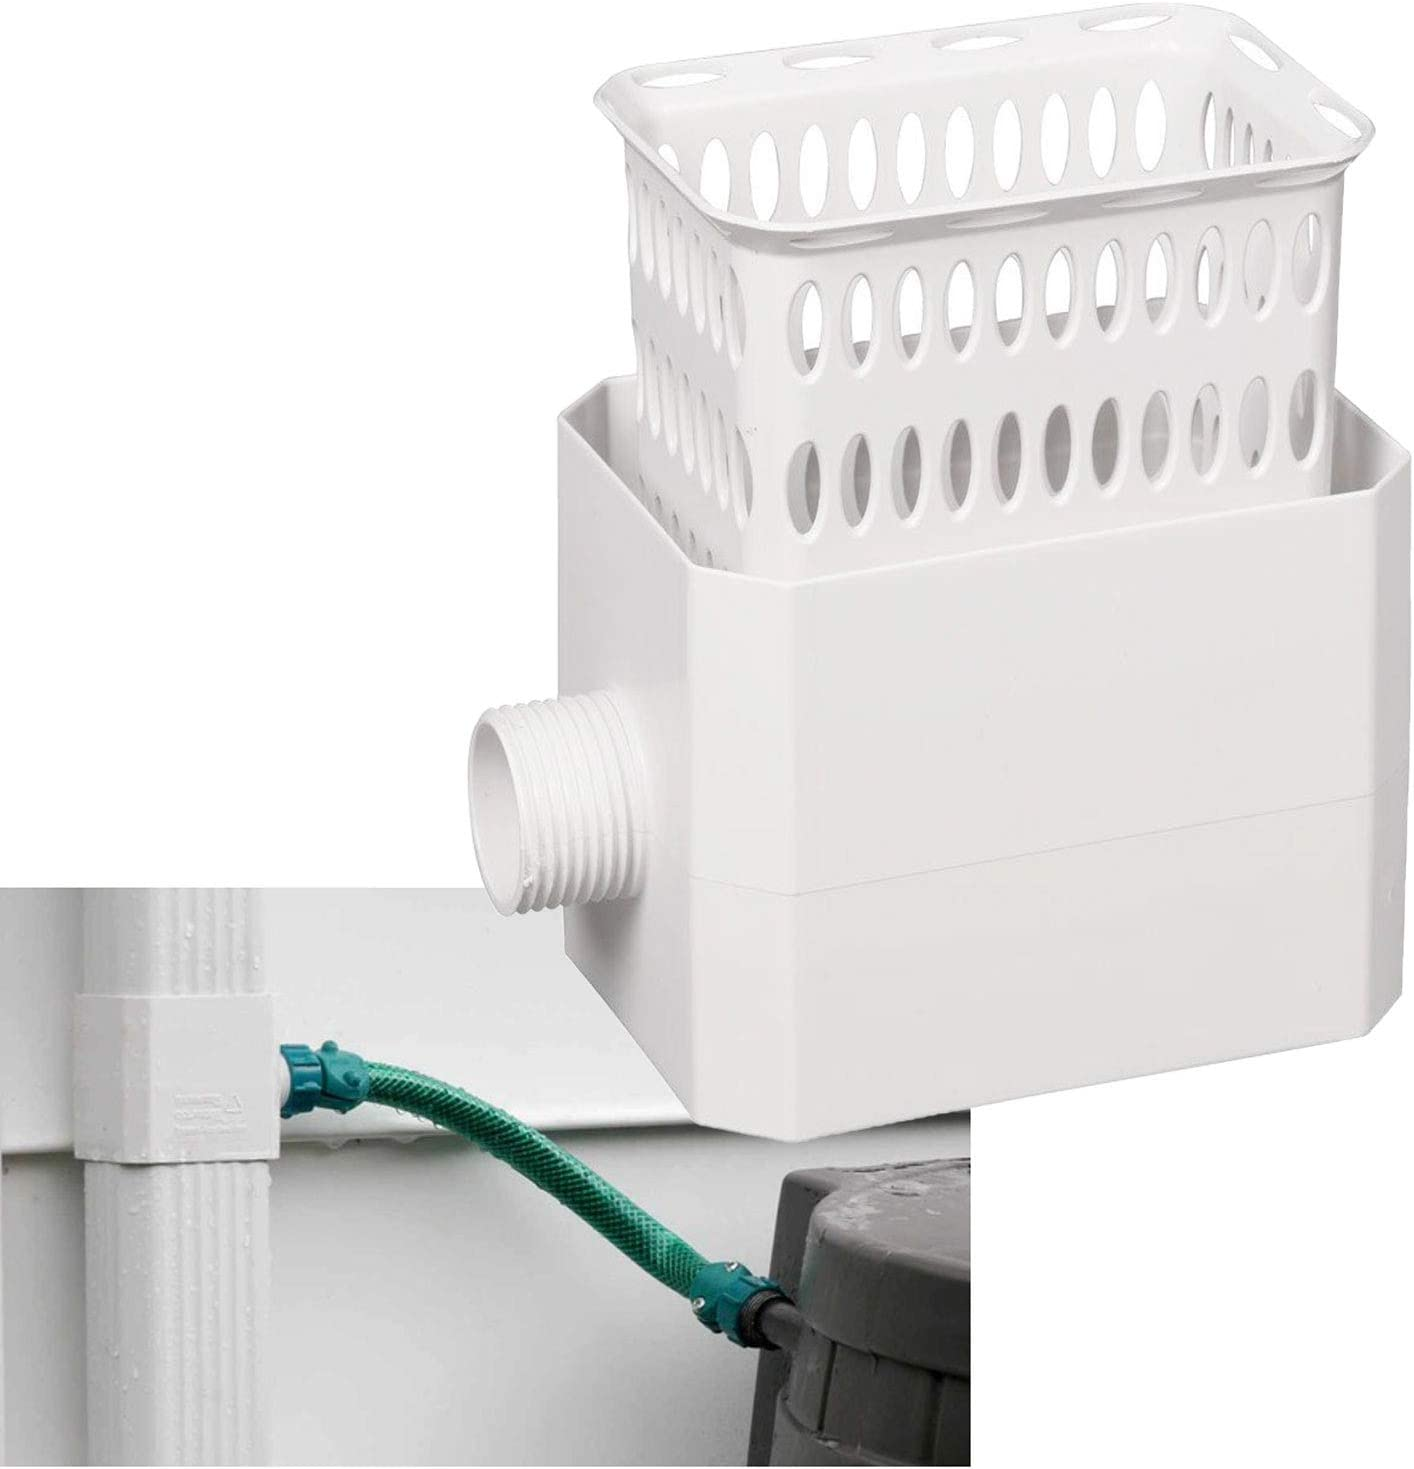 Downspout Rainwater Collection Diverter Connector System Colander with Filter 2x3-in, White